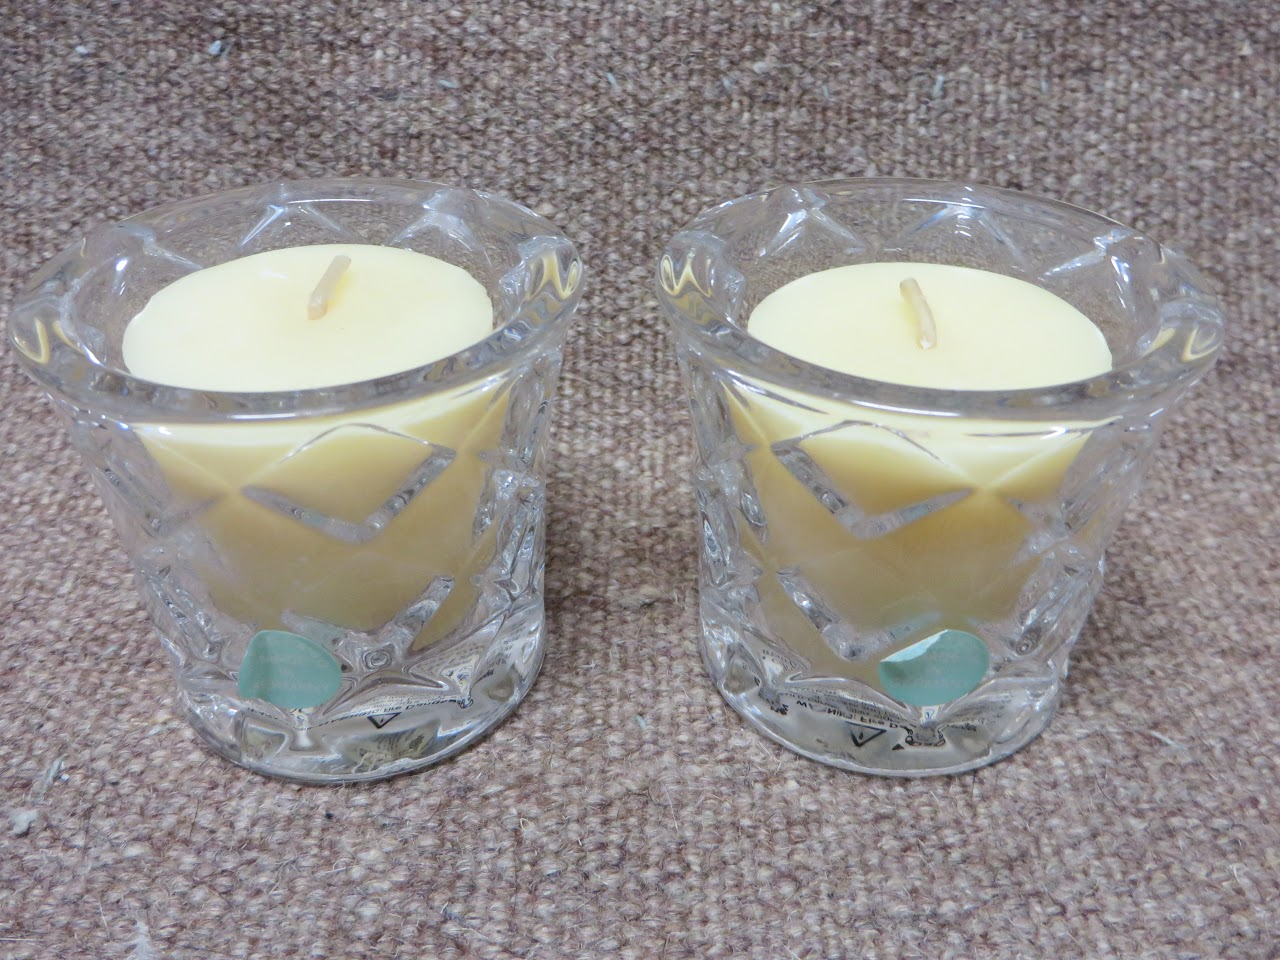 Tiffany & Co. Votives and Candels